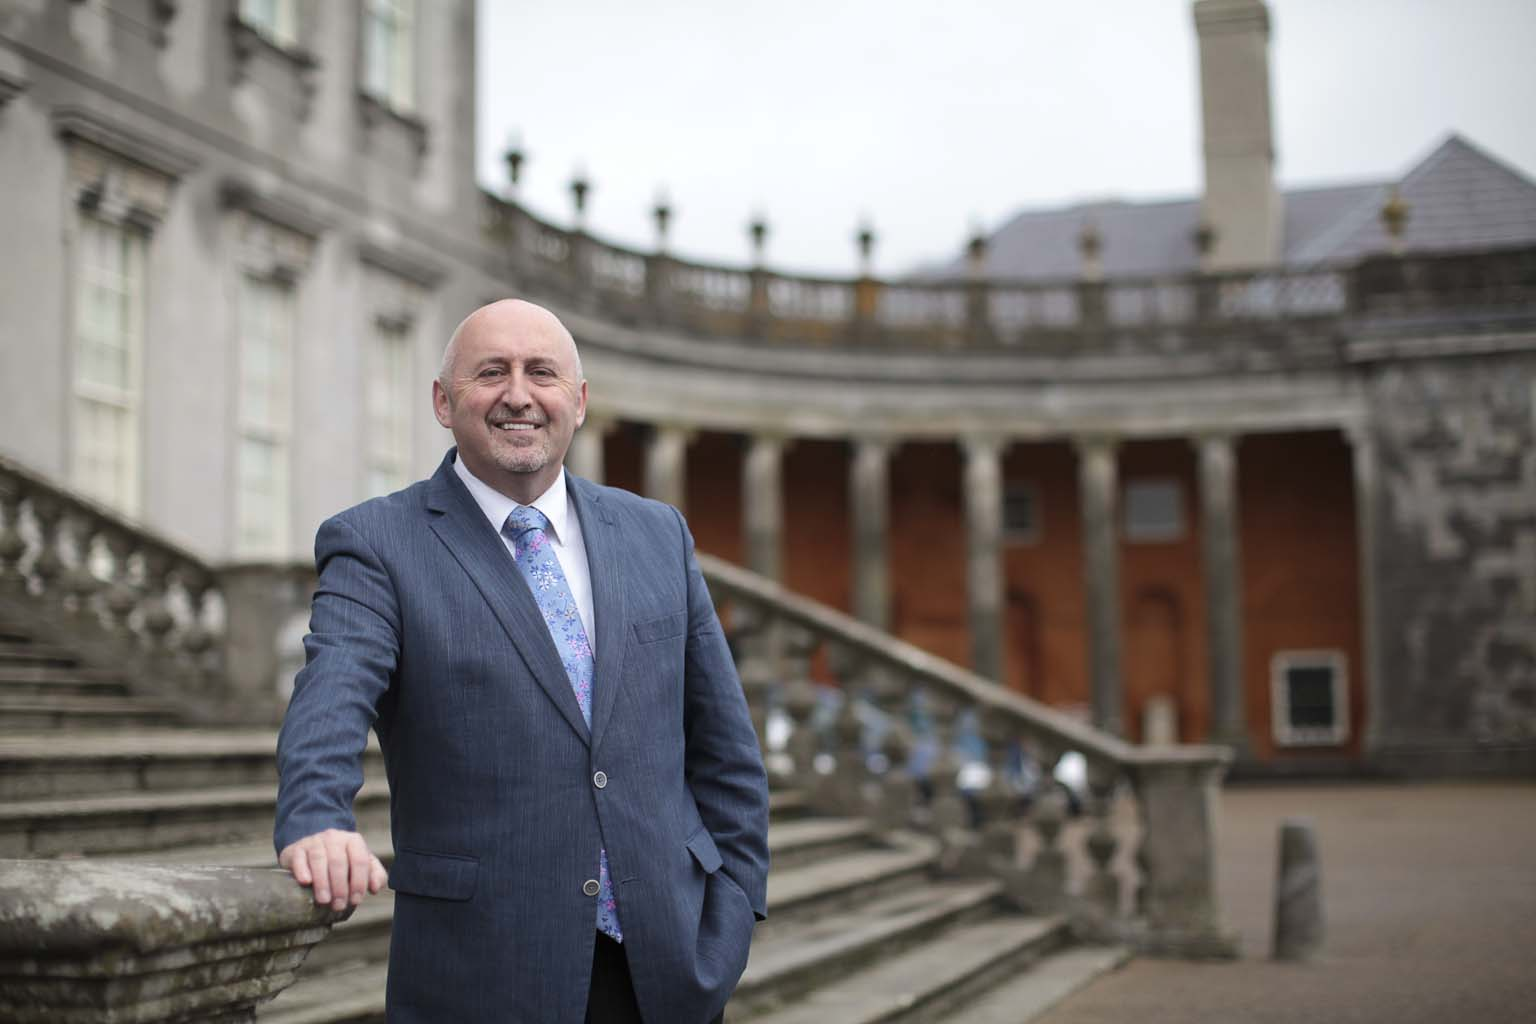 History - Terry Dooley at Castletown House - Maynooth University